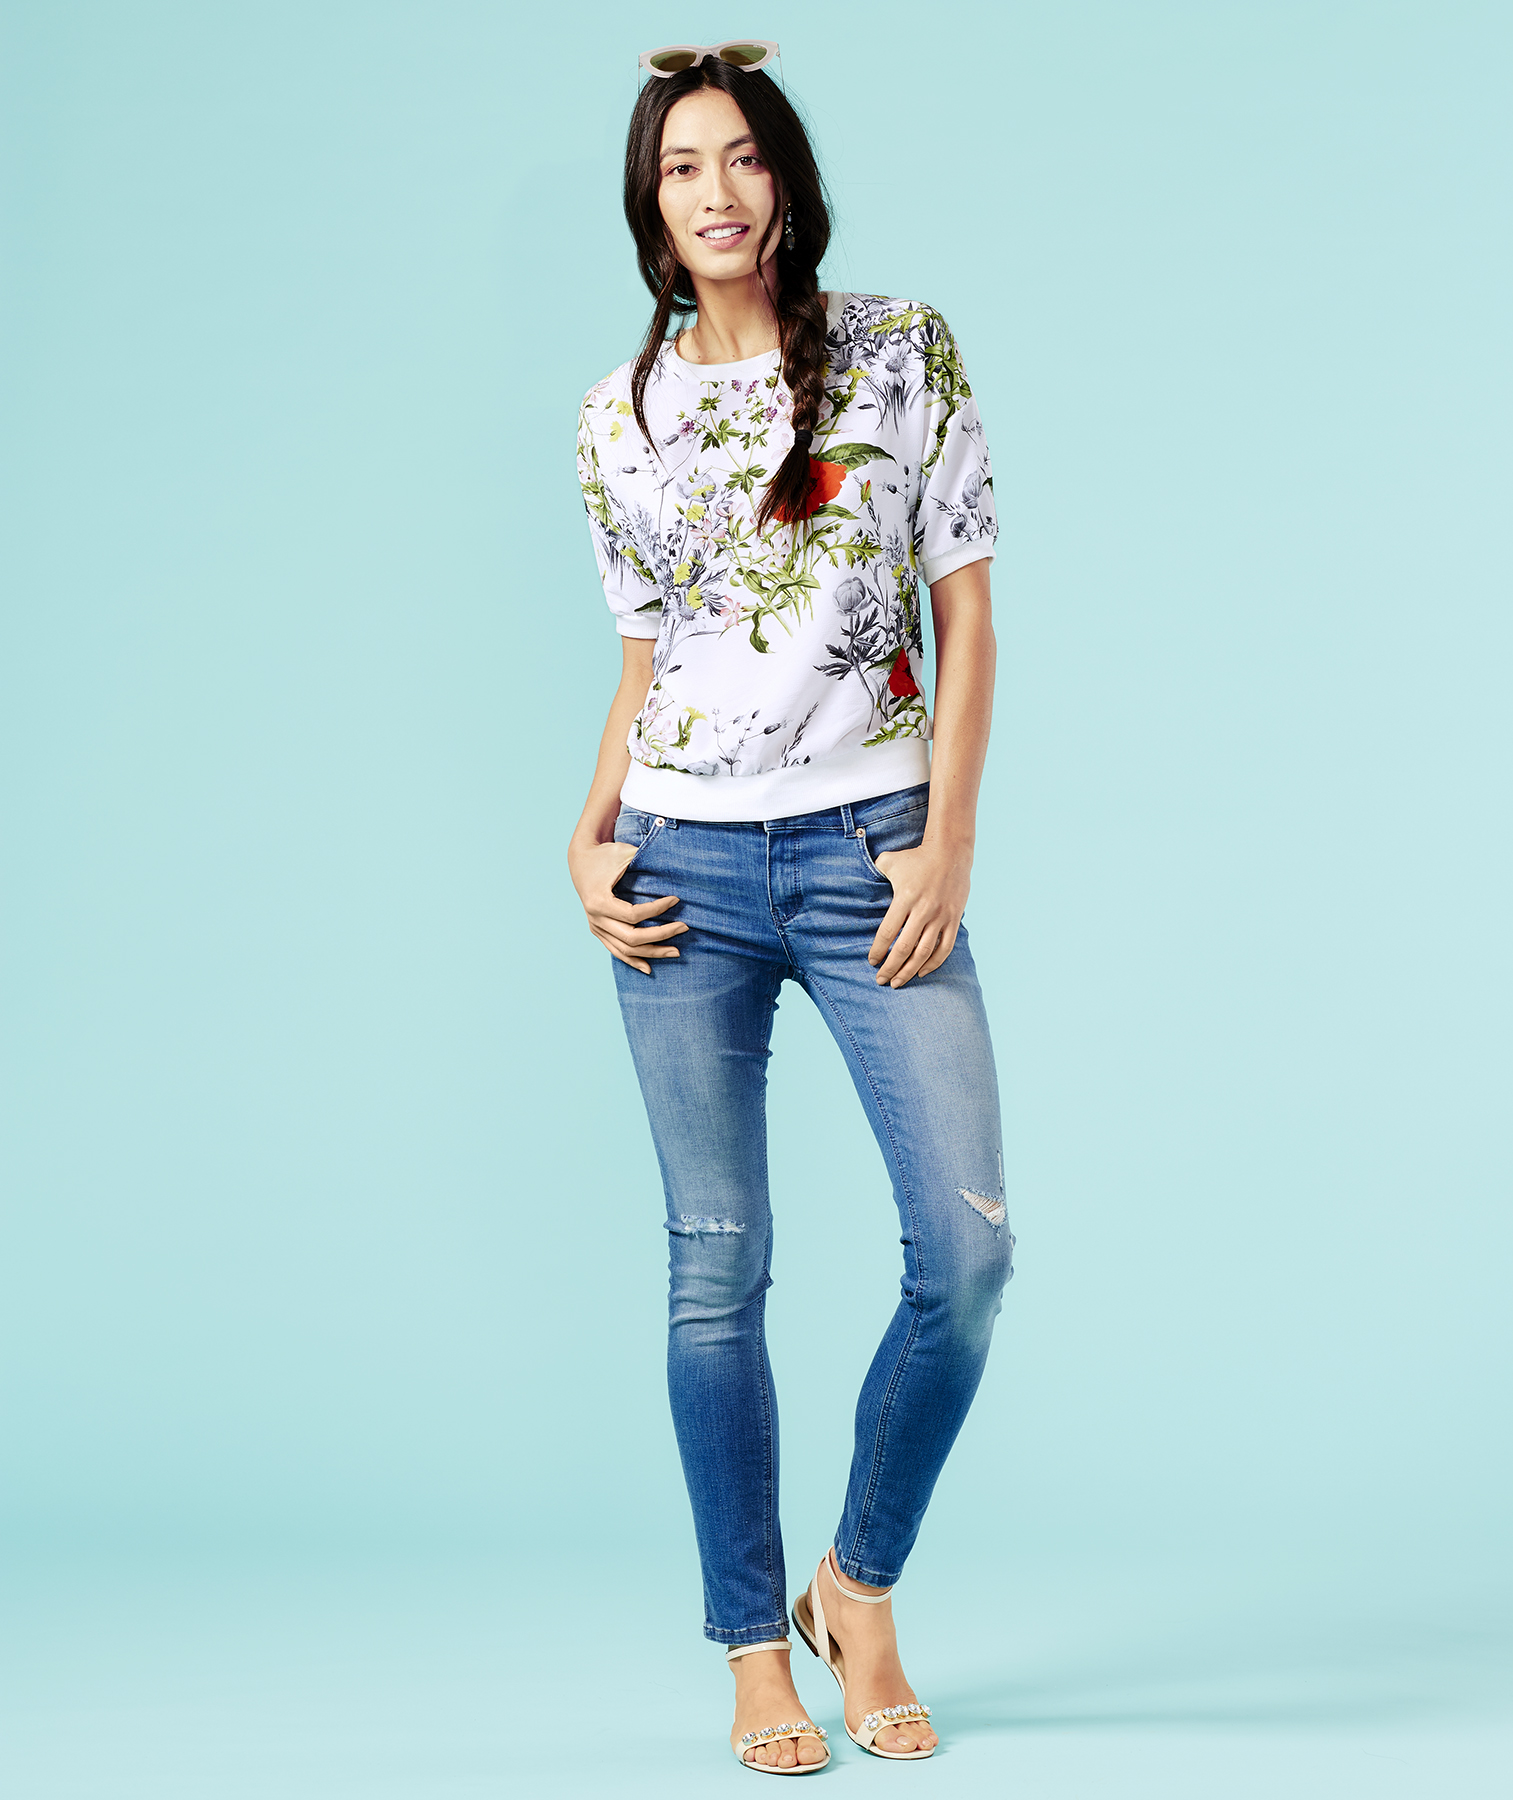 Outfit with floral top and jeans